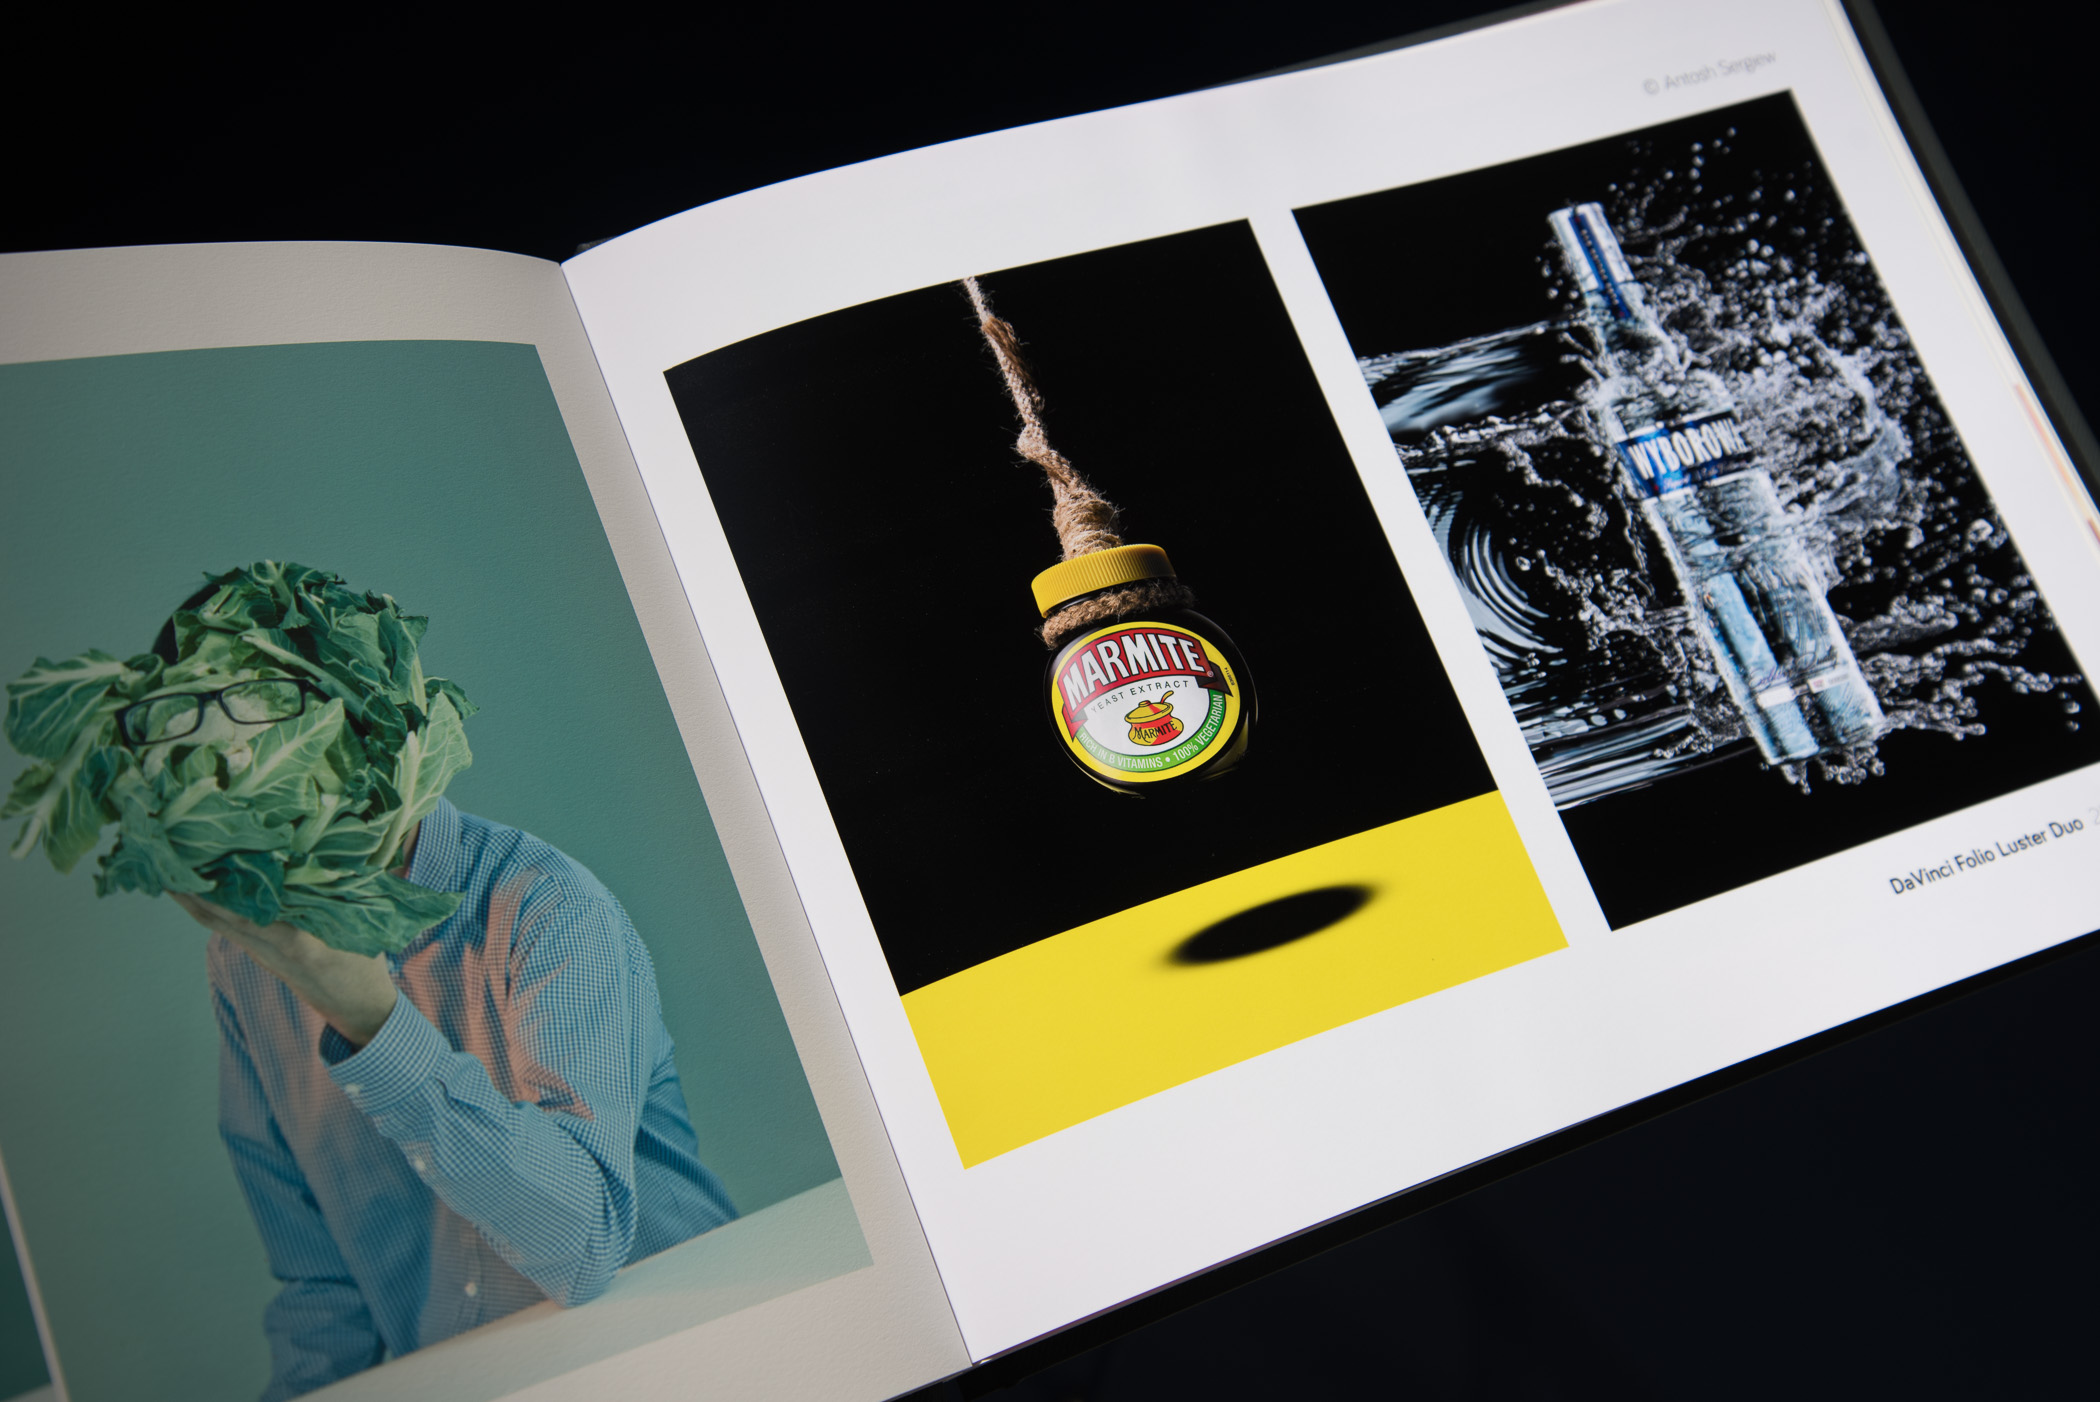 Screwpost binding allows portfolio spreads without the need for acetate sleeves. Image content © Phil Fisk,©Antosh Sergiew